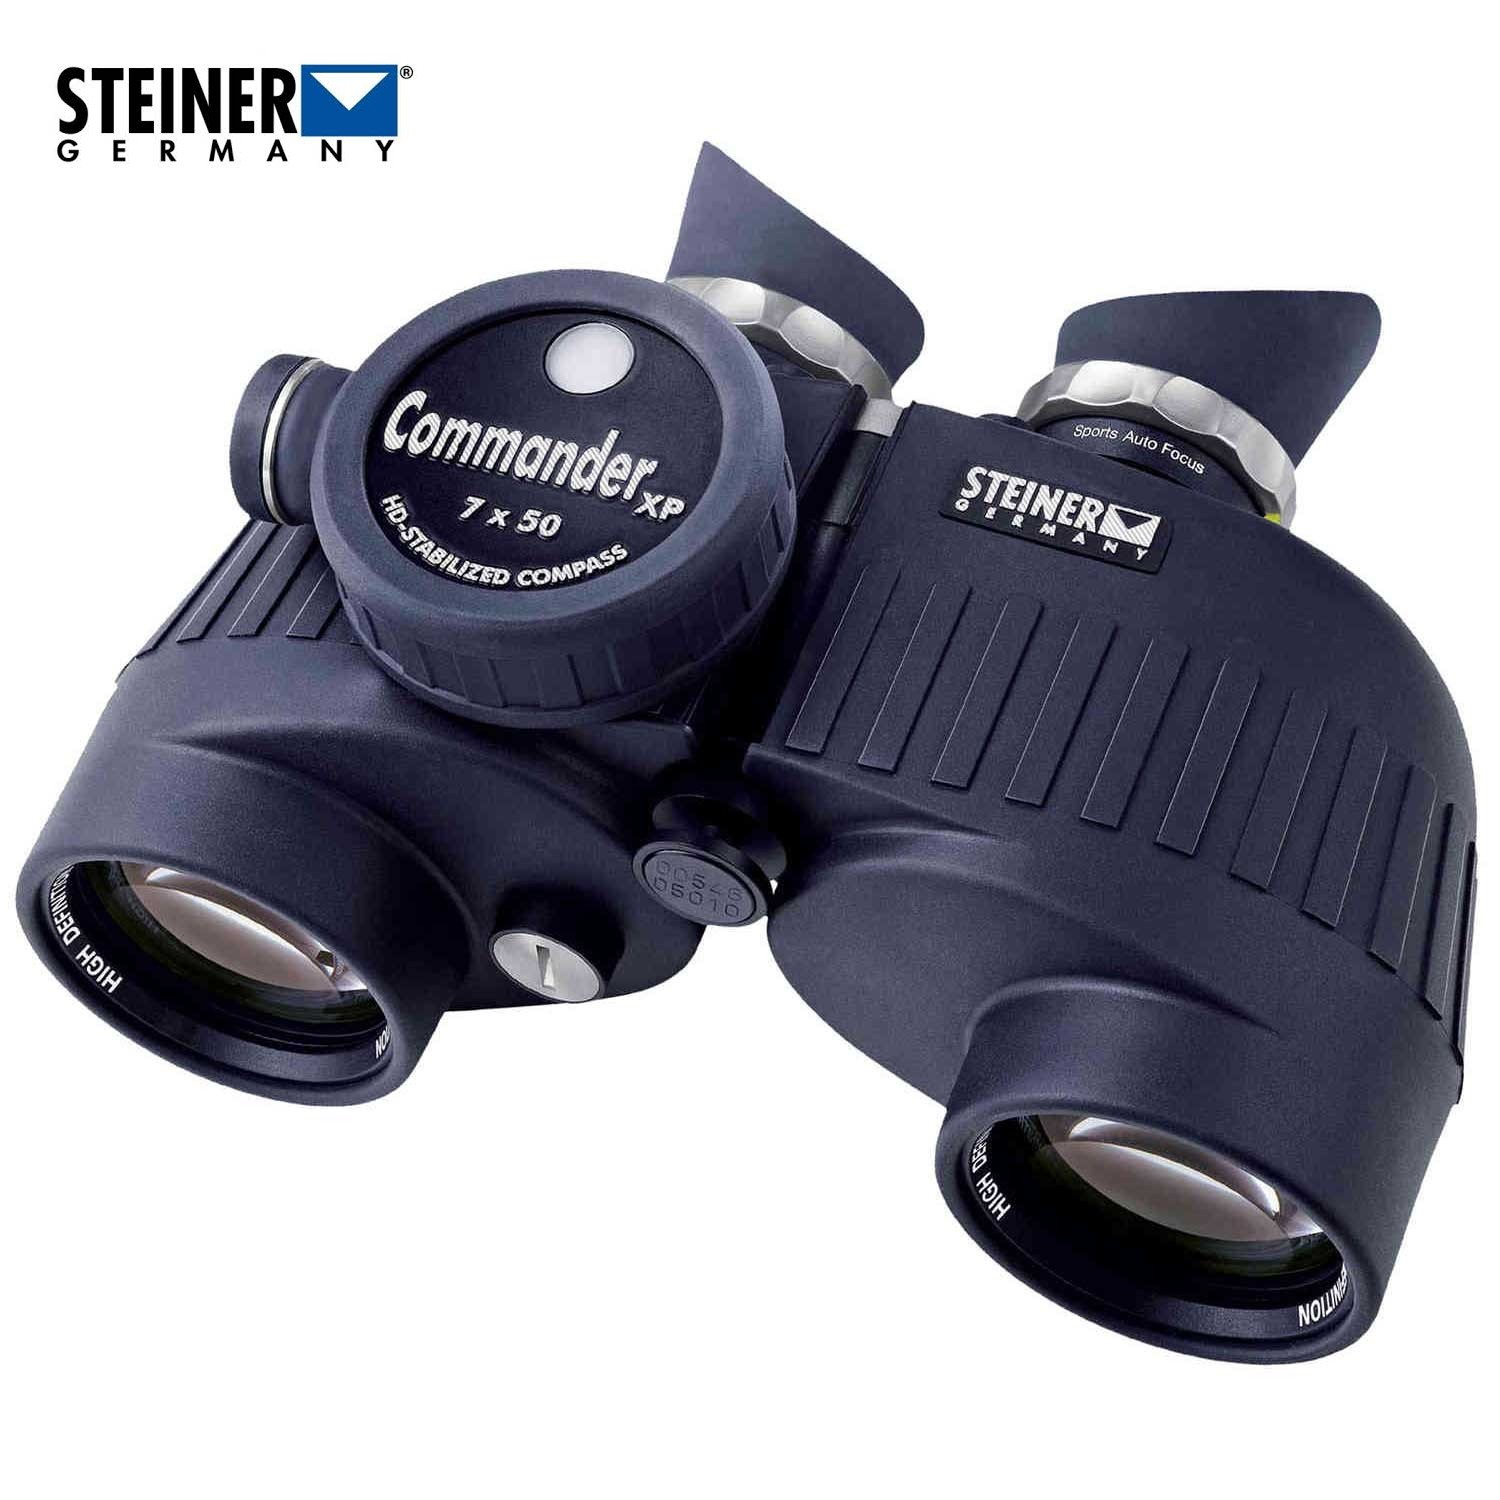 Steiner Commander Global 7 x 50 Compass